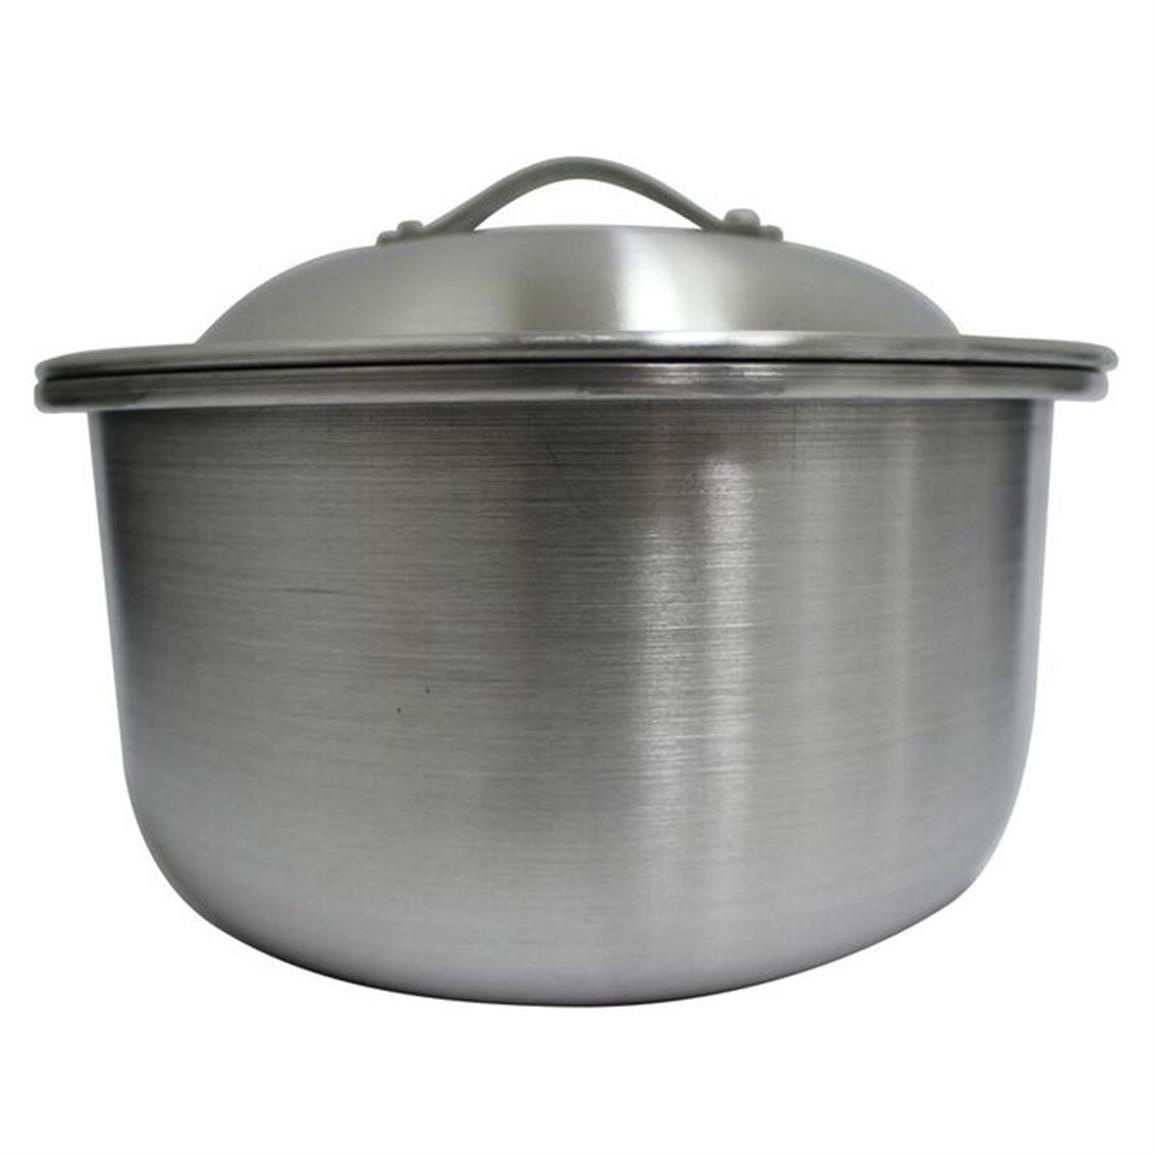 2-quart Aluminum Kettle